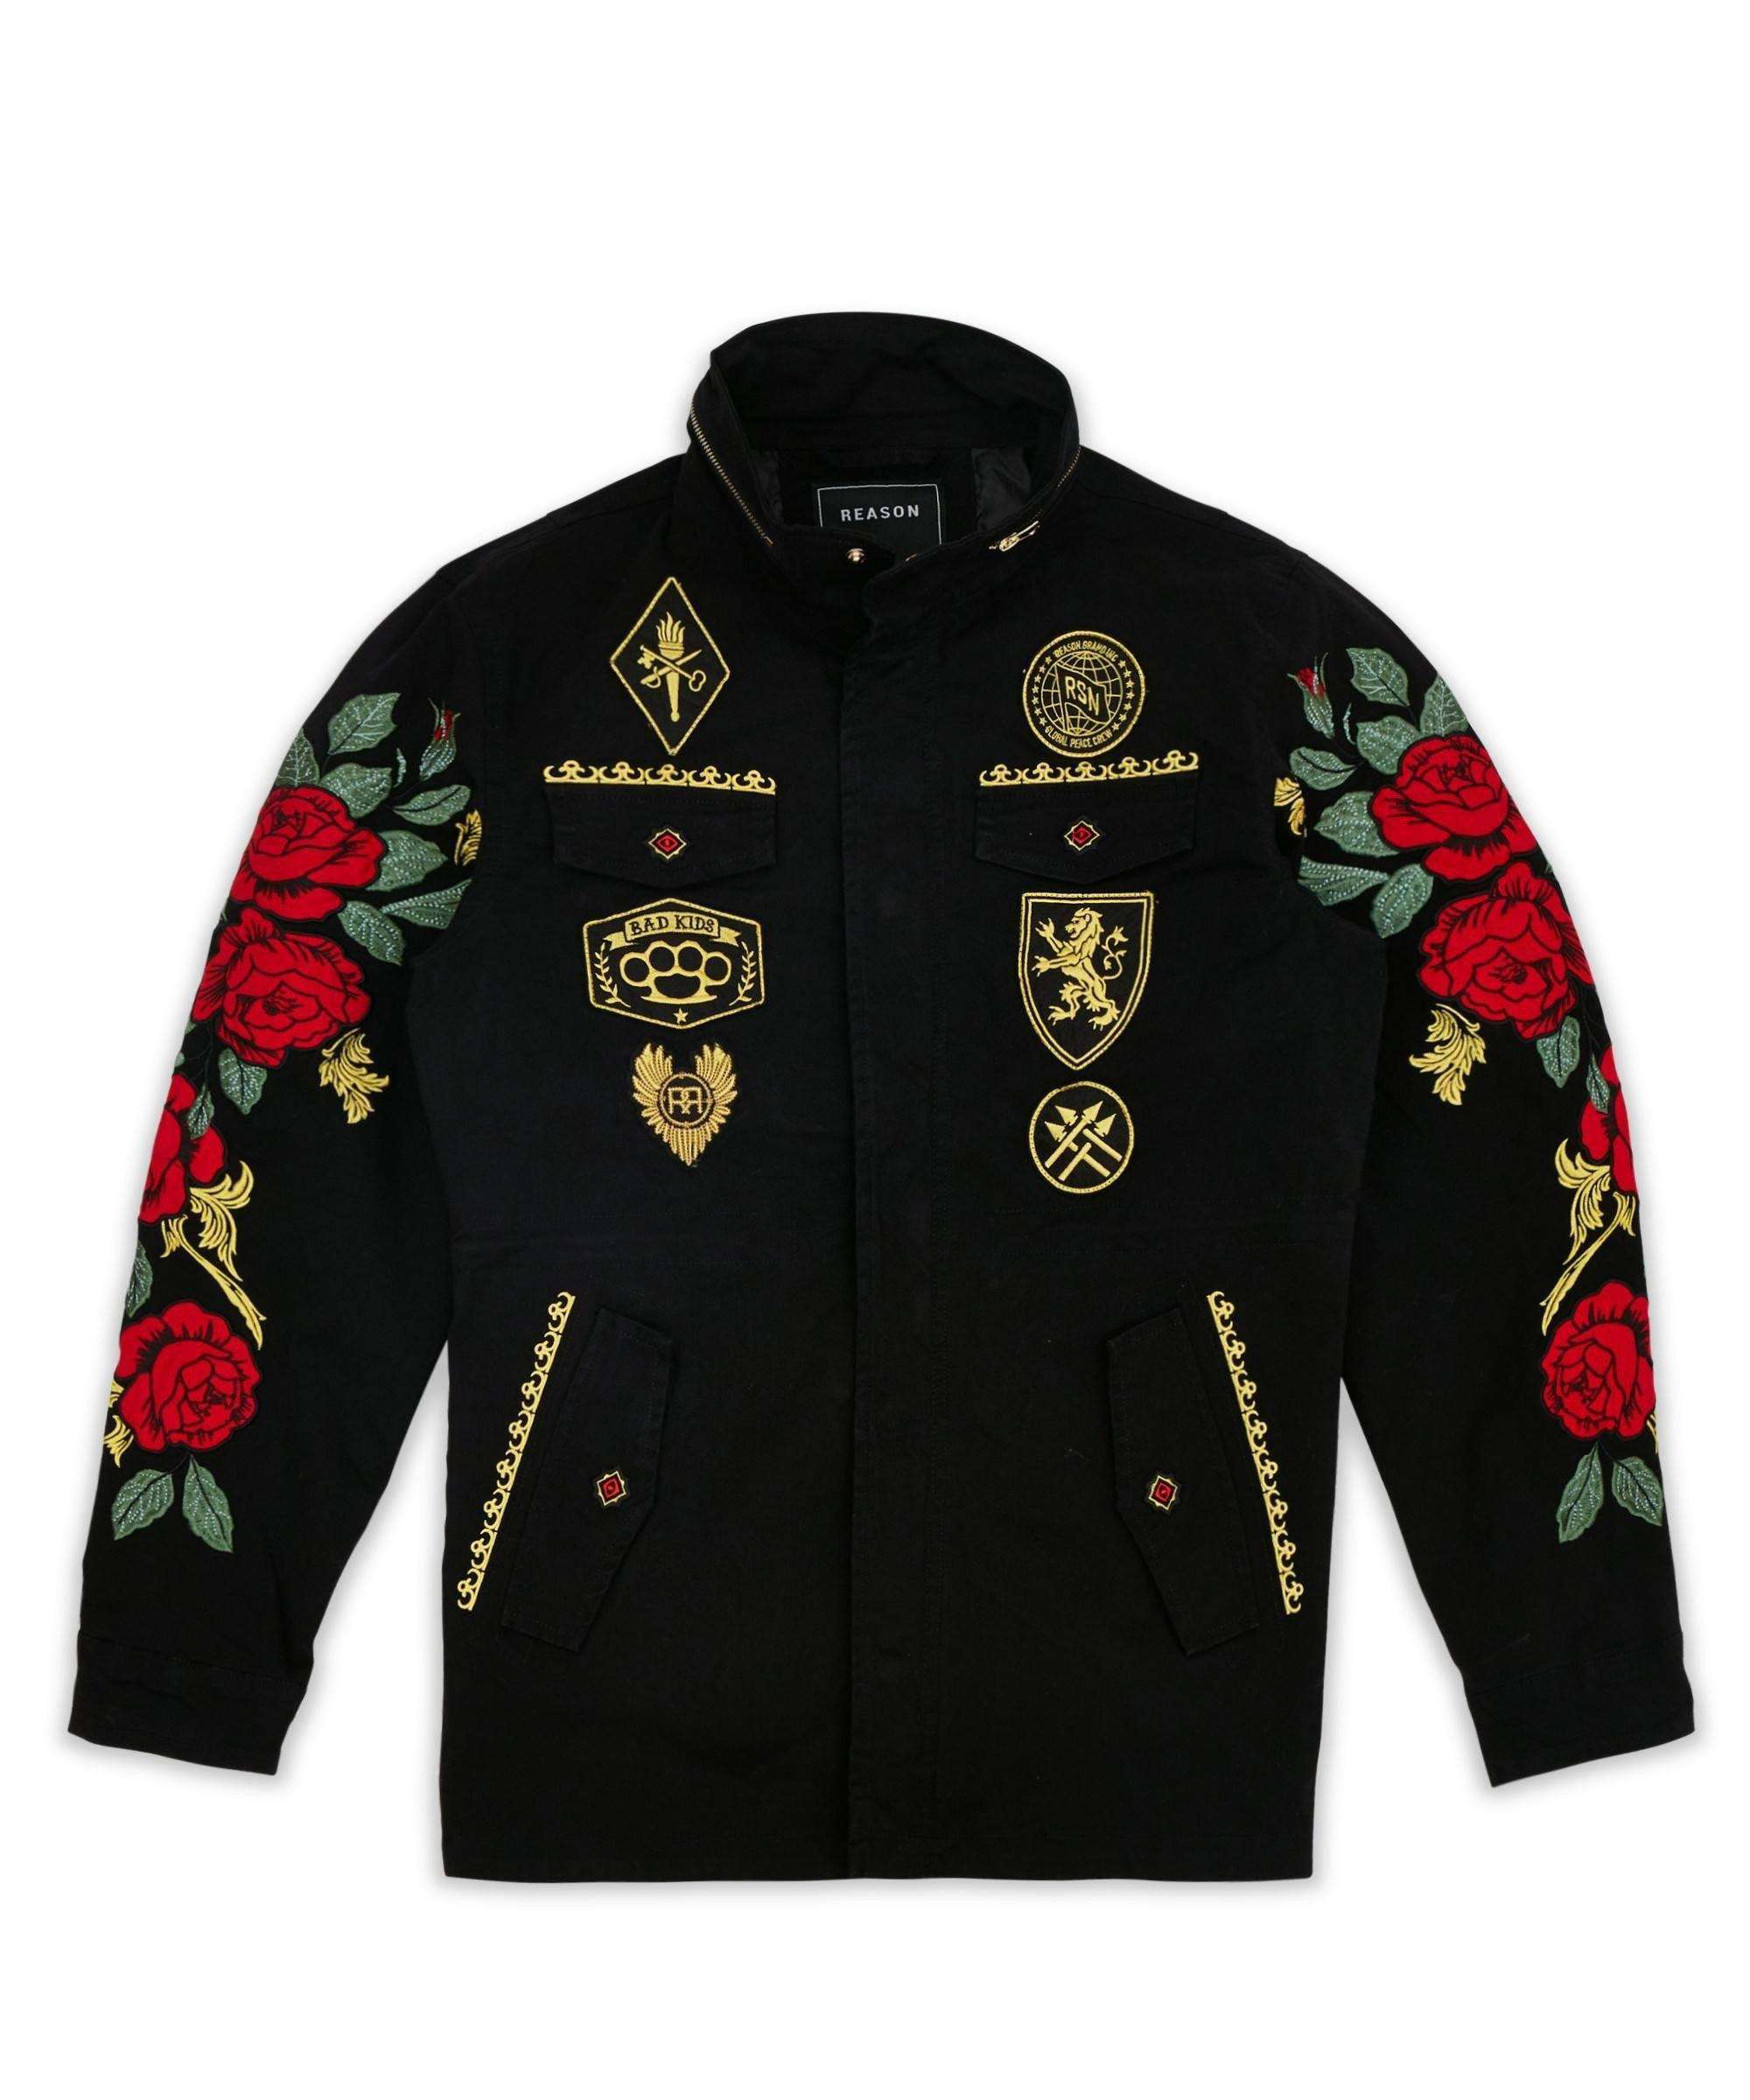 REGAL M65 MILITARY JACKET - BLACK Reason Clothing